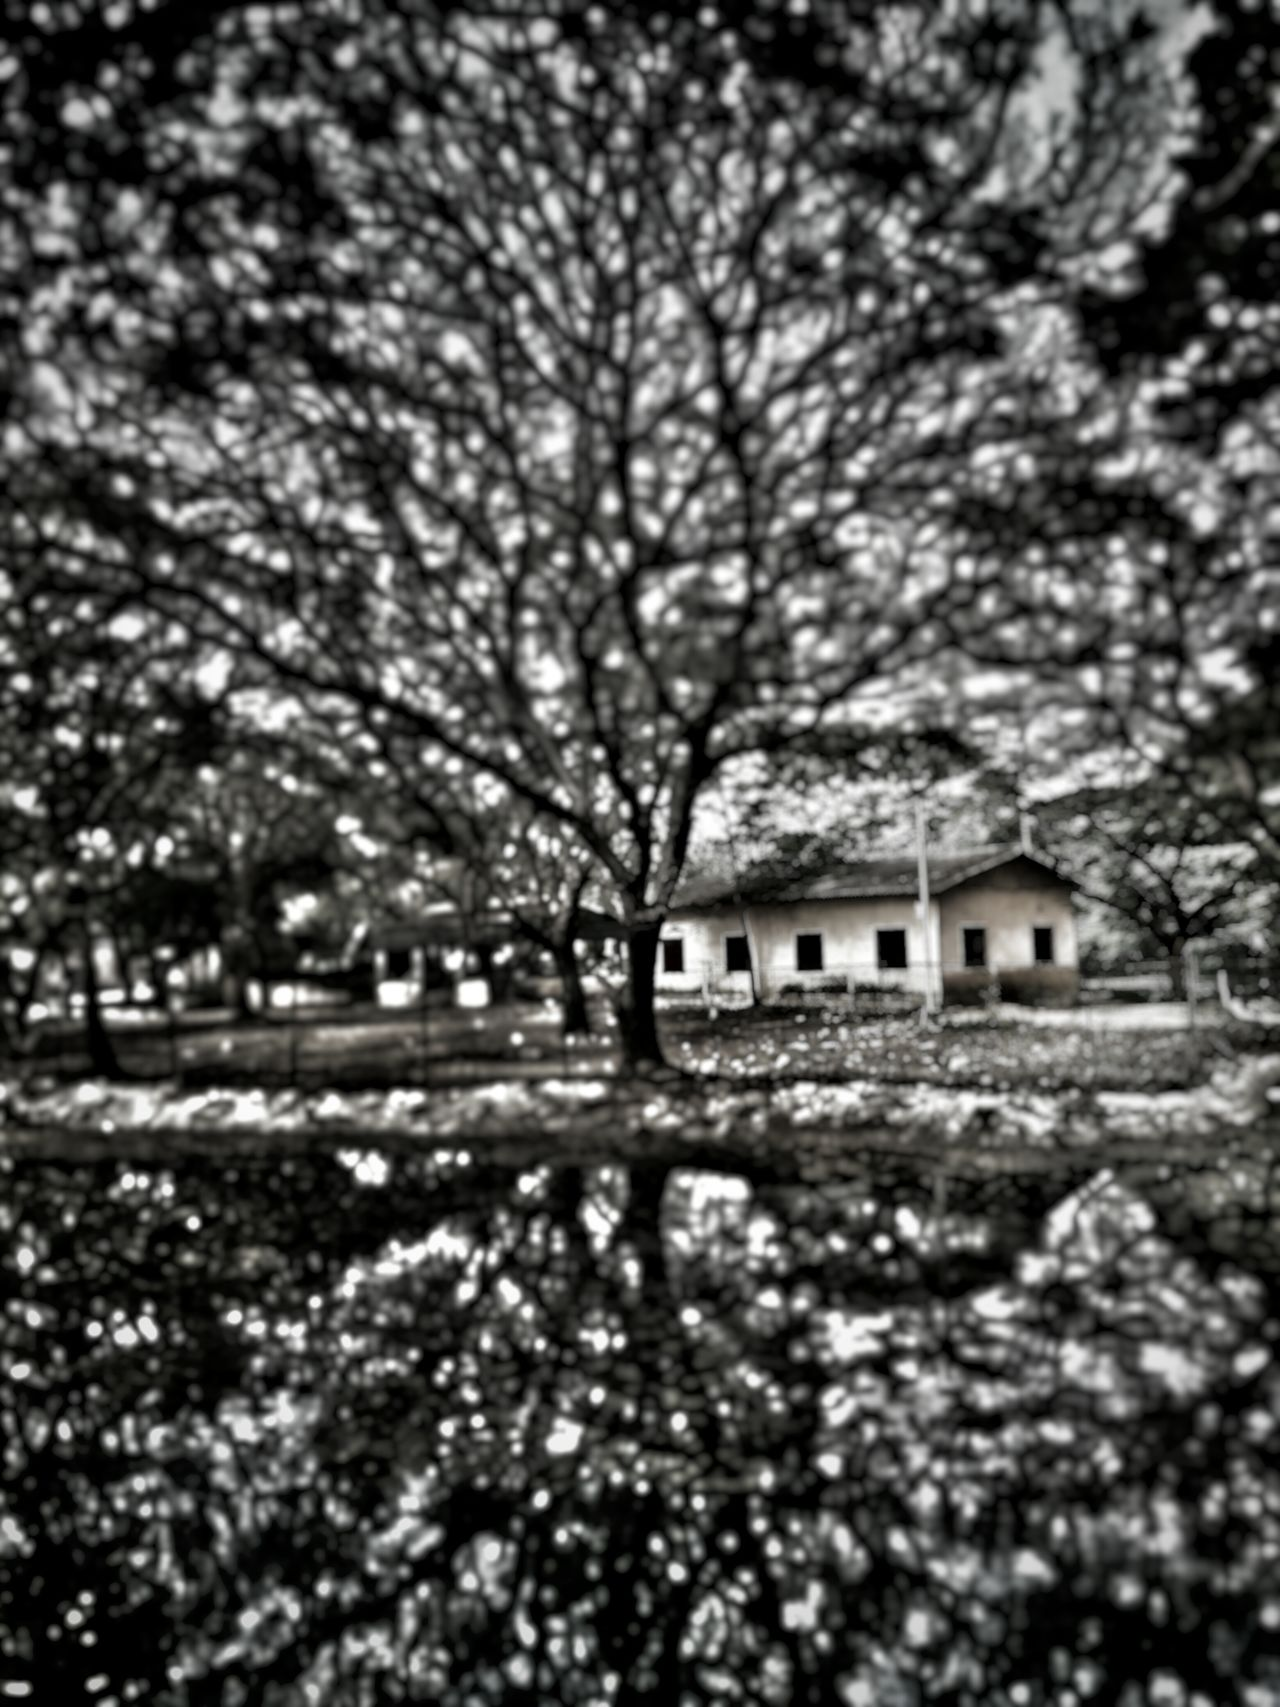 Built Structure House No People Outdoors Tree Day Nature Surreal Abstract Abstract Photography Mobilephotography EyeEm Gallery Oneplus2 India Edit Snapseed Chennai,India Tower Park Reflection Blurred Background Network Neural Art Close-up South India